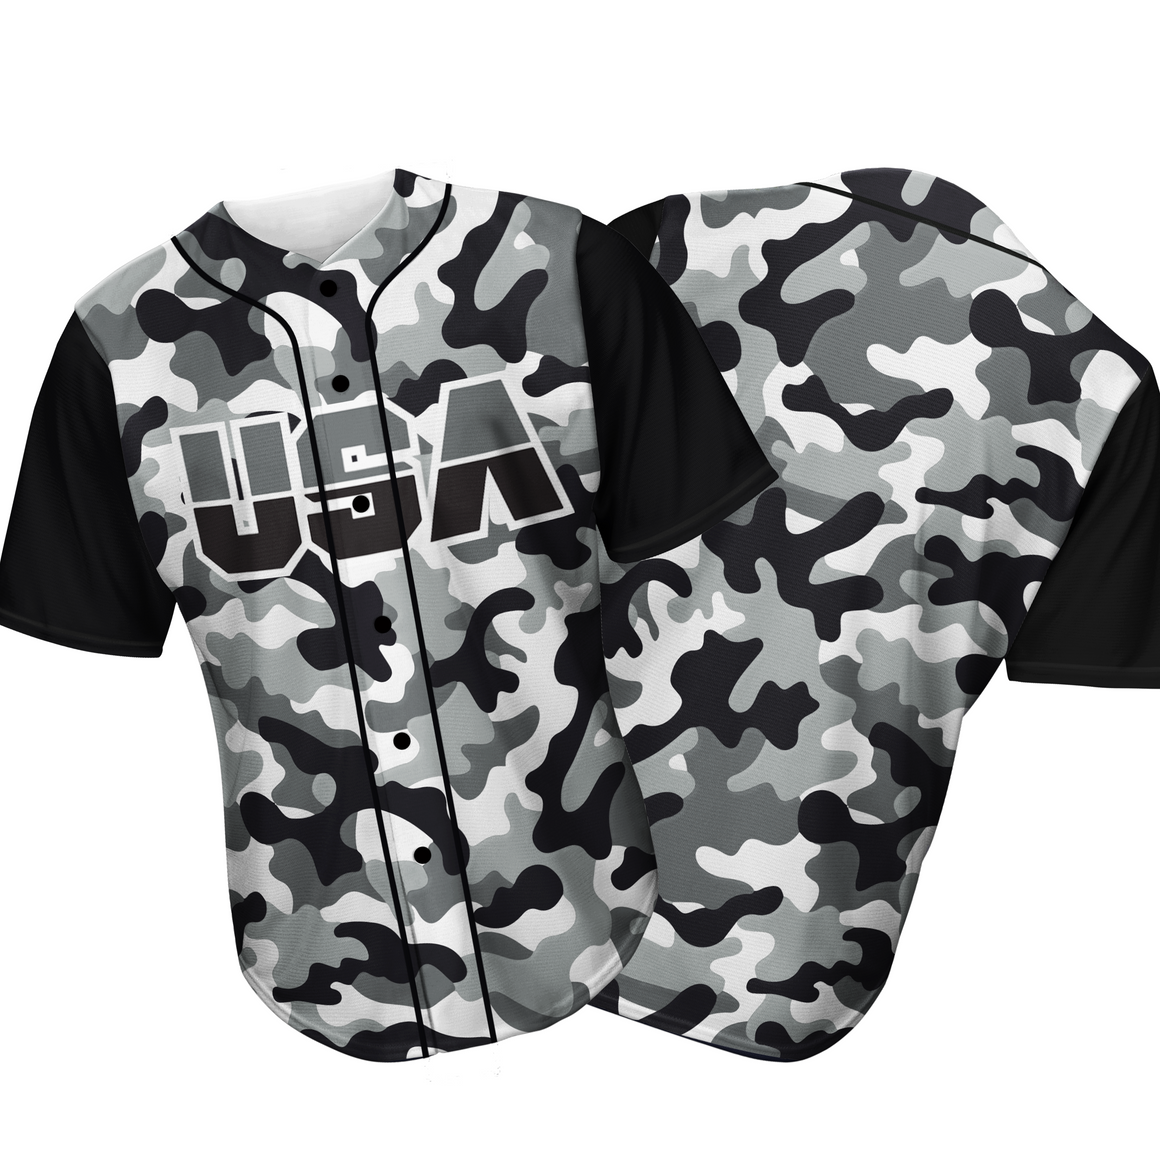 USA Baseball Jersey Camo (Black/White)